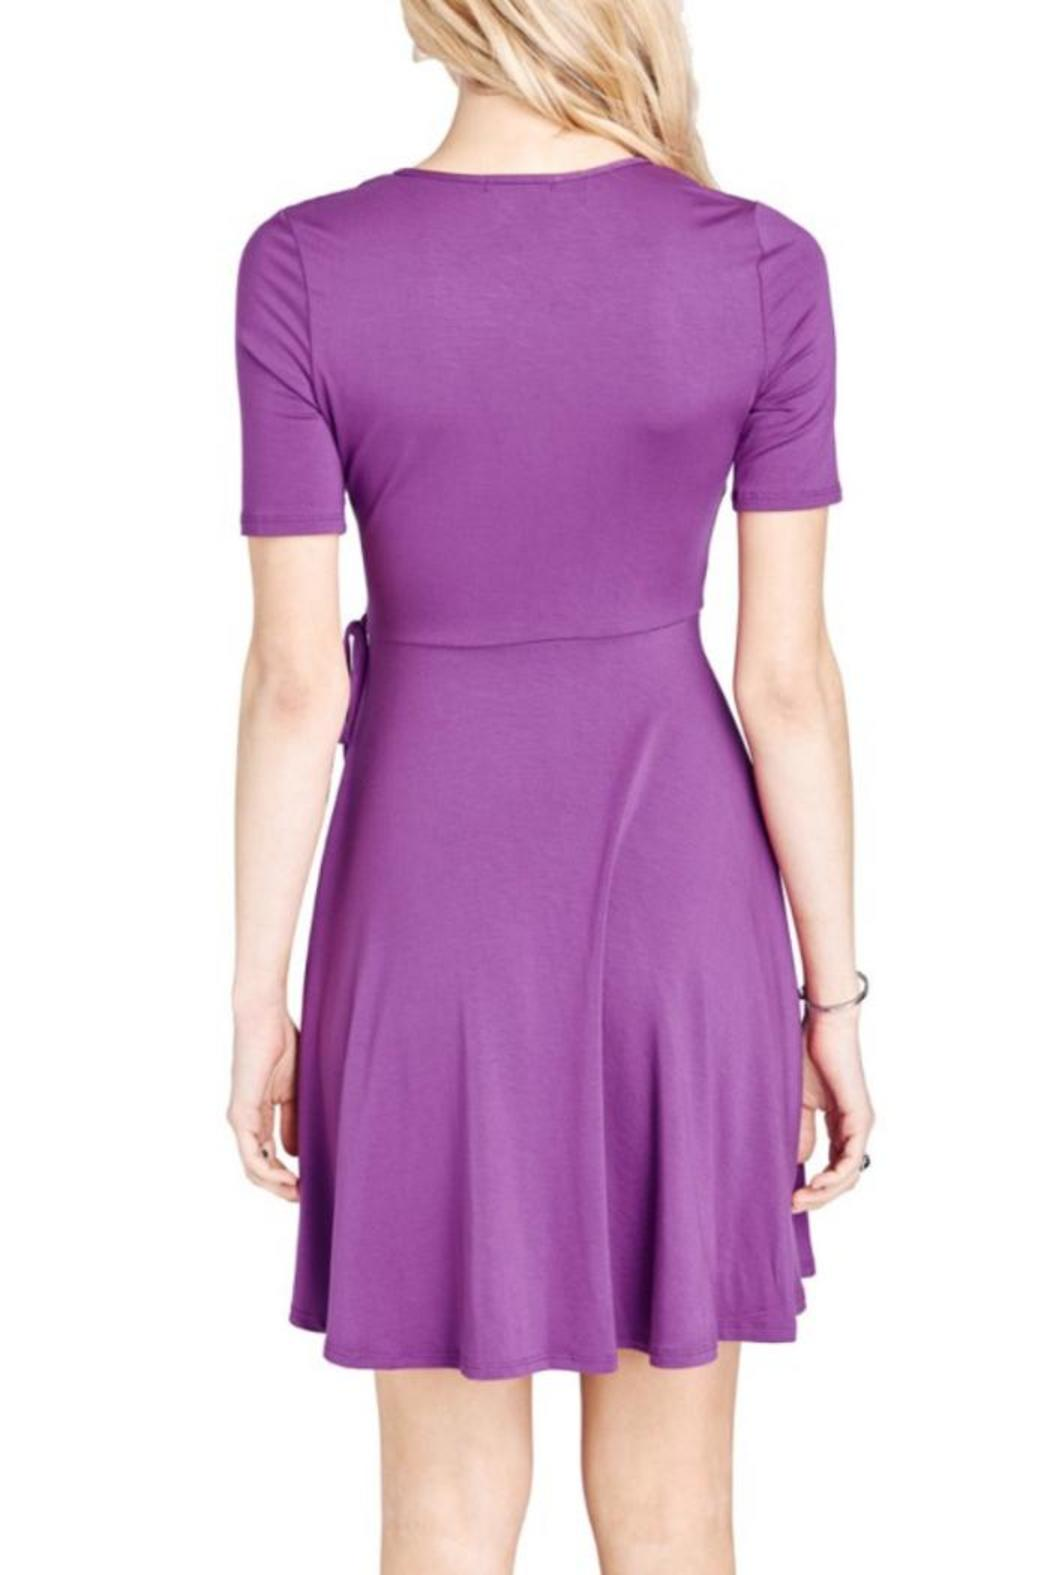 Mai Tai Purple Wrap Dress - Side Cropped Image